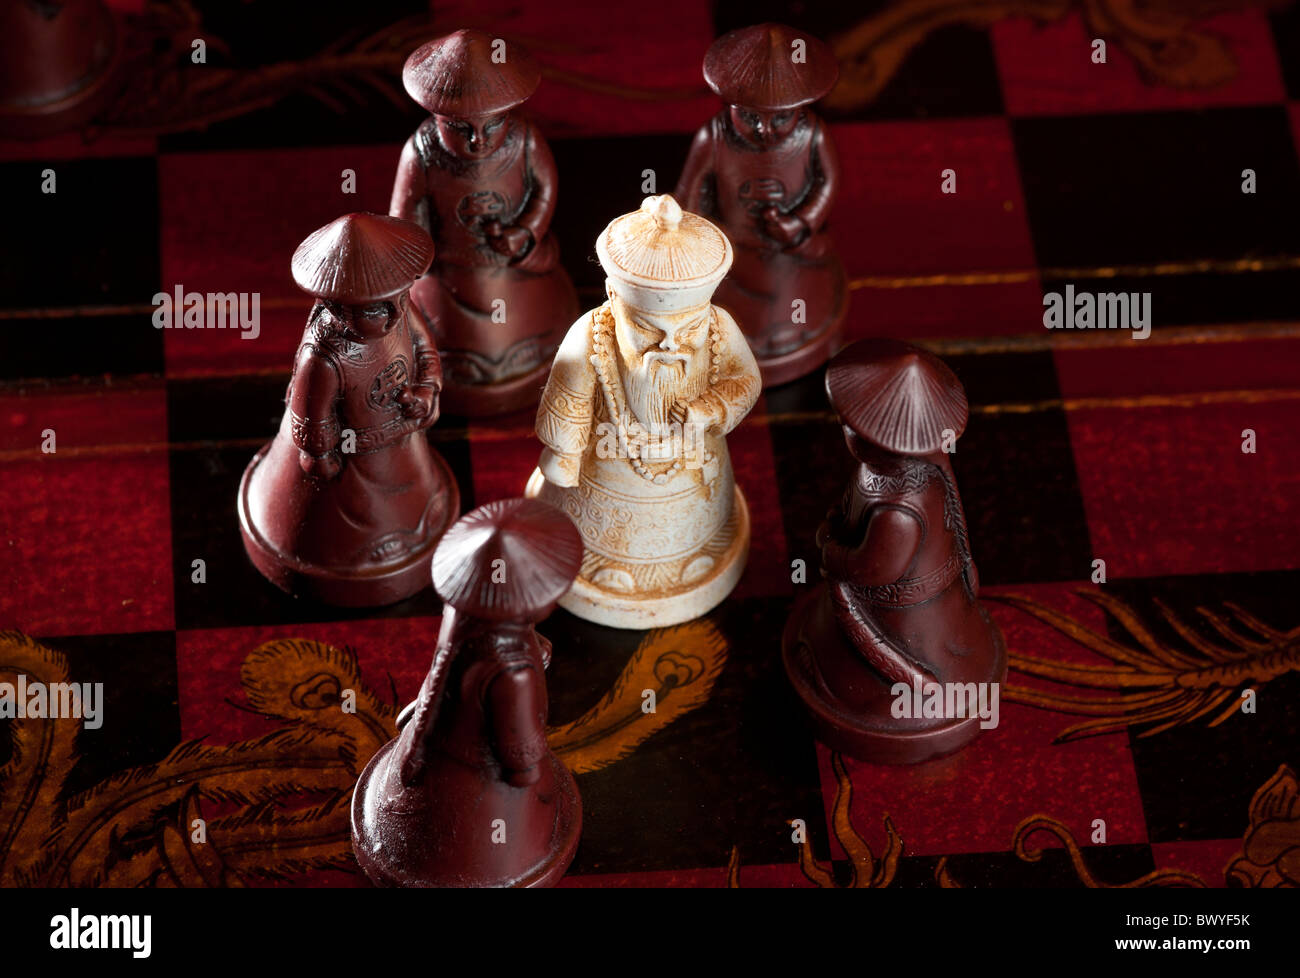 Strategy Game - White Bishop surrounded by Pawn - Stock Image